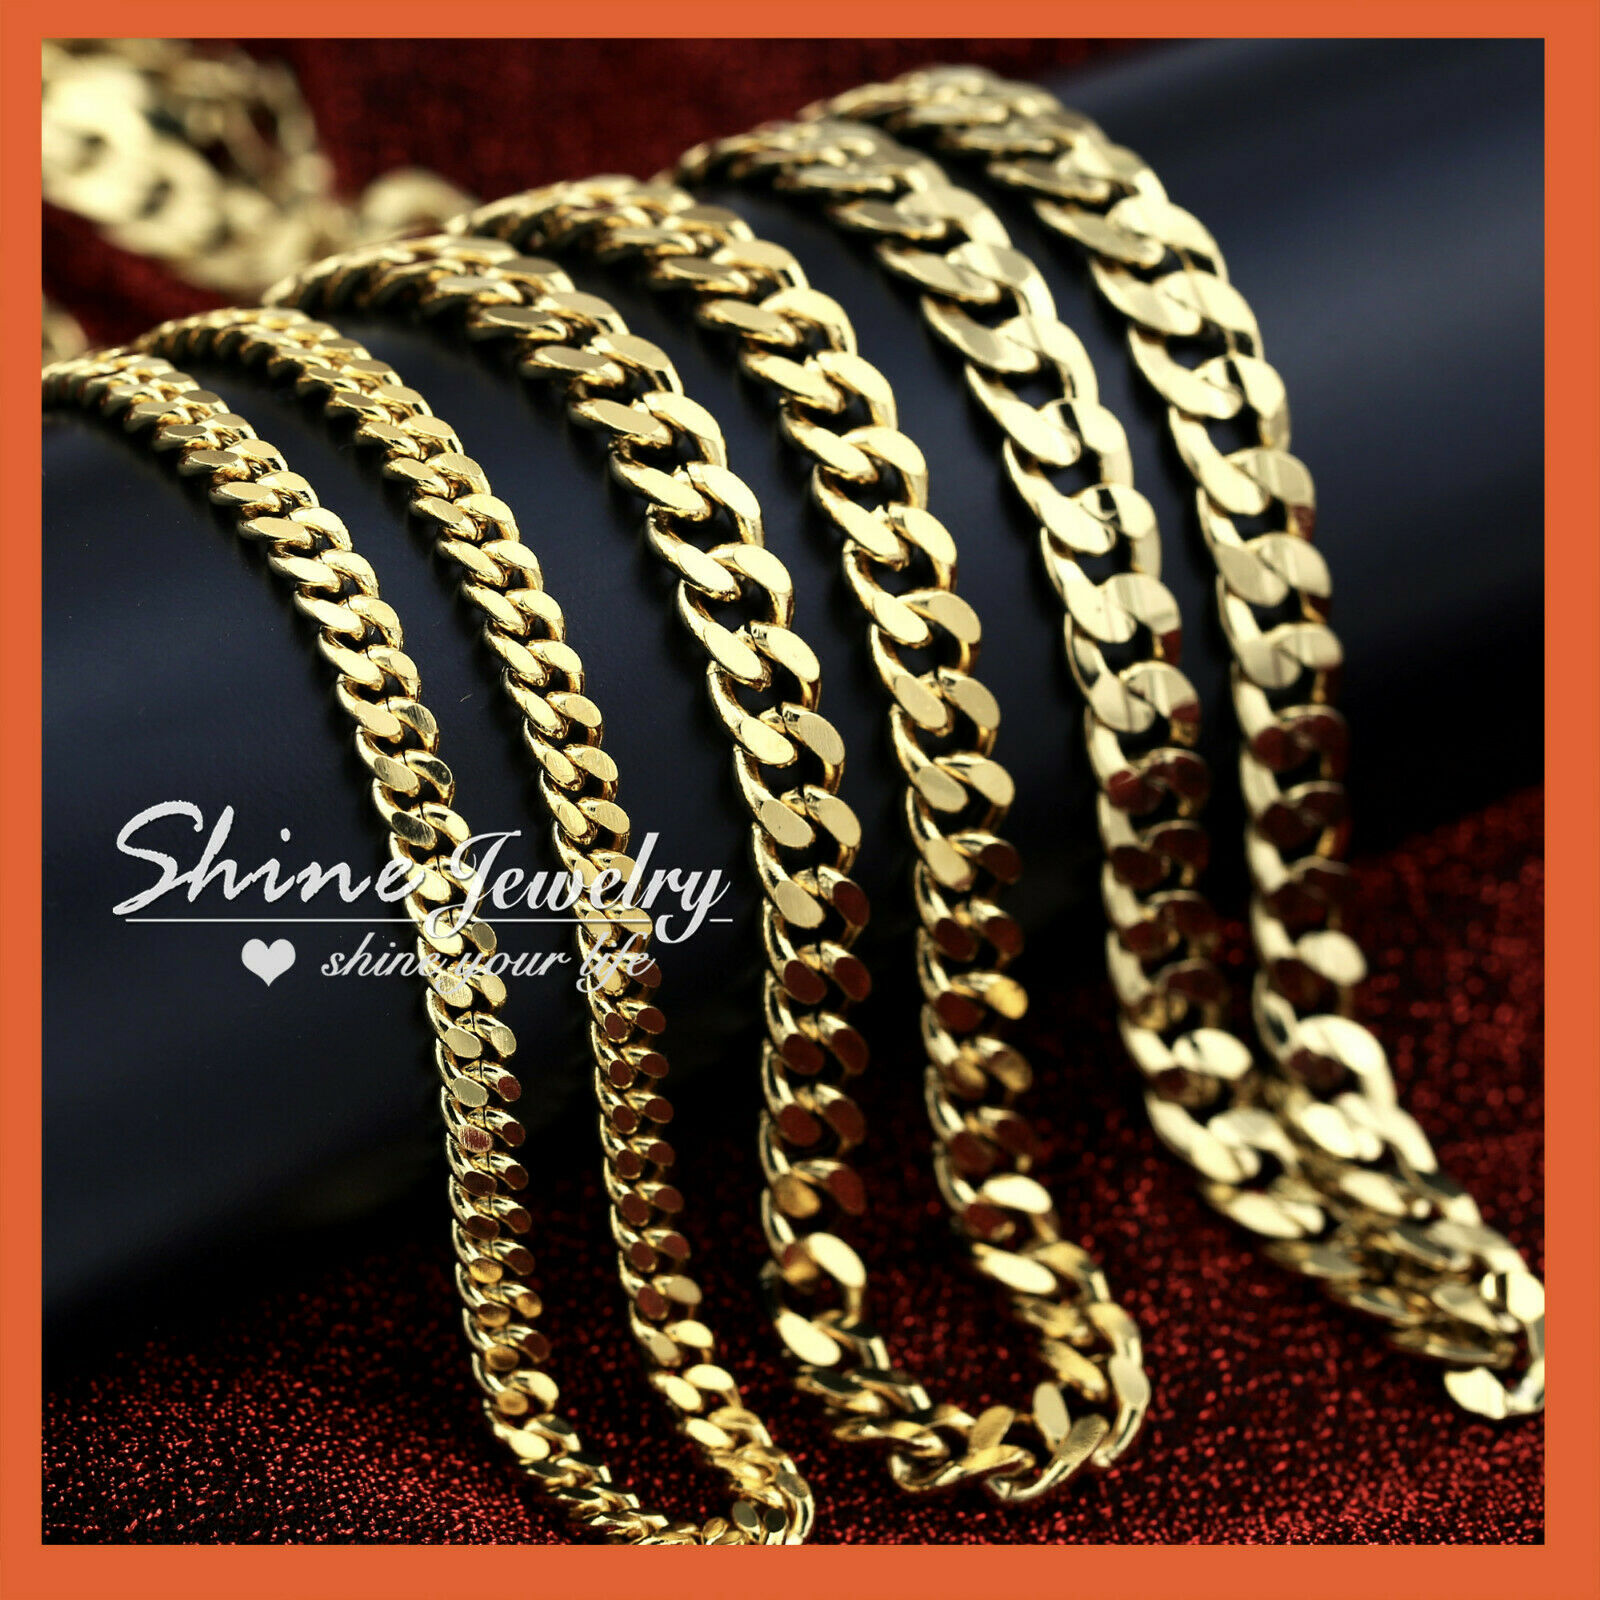 Jewellery - 24k YELLOW GOLD GF CUBAN CURB CHAIN MENS WOMENS SOLID 16-28INCH ITALIAN NECKLACE